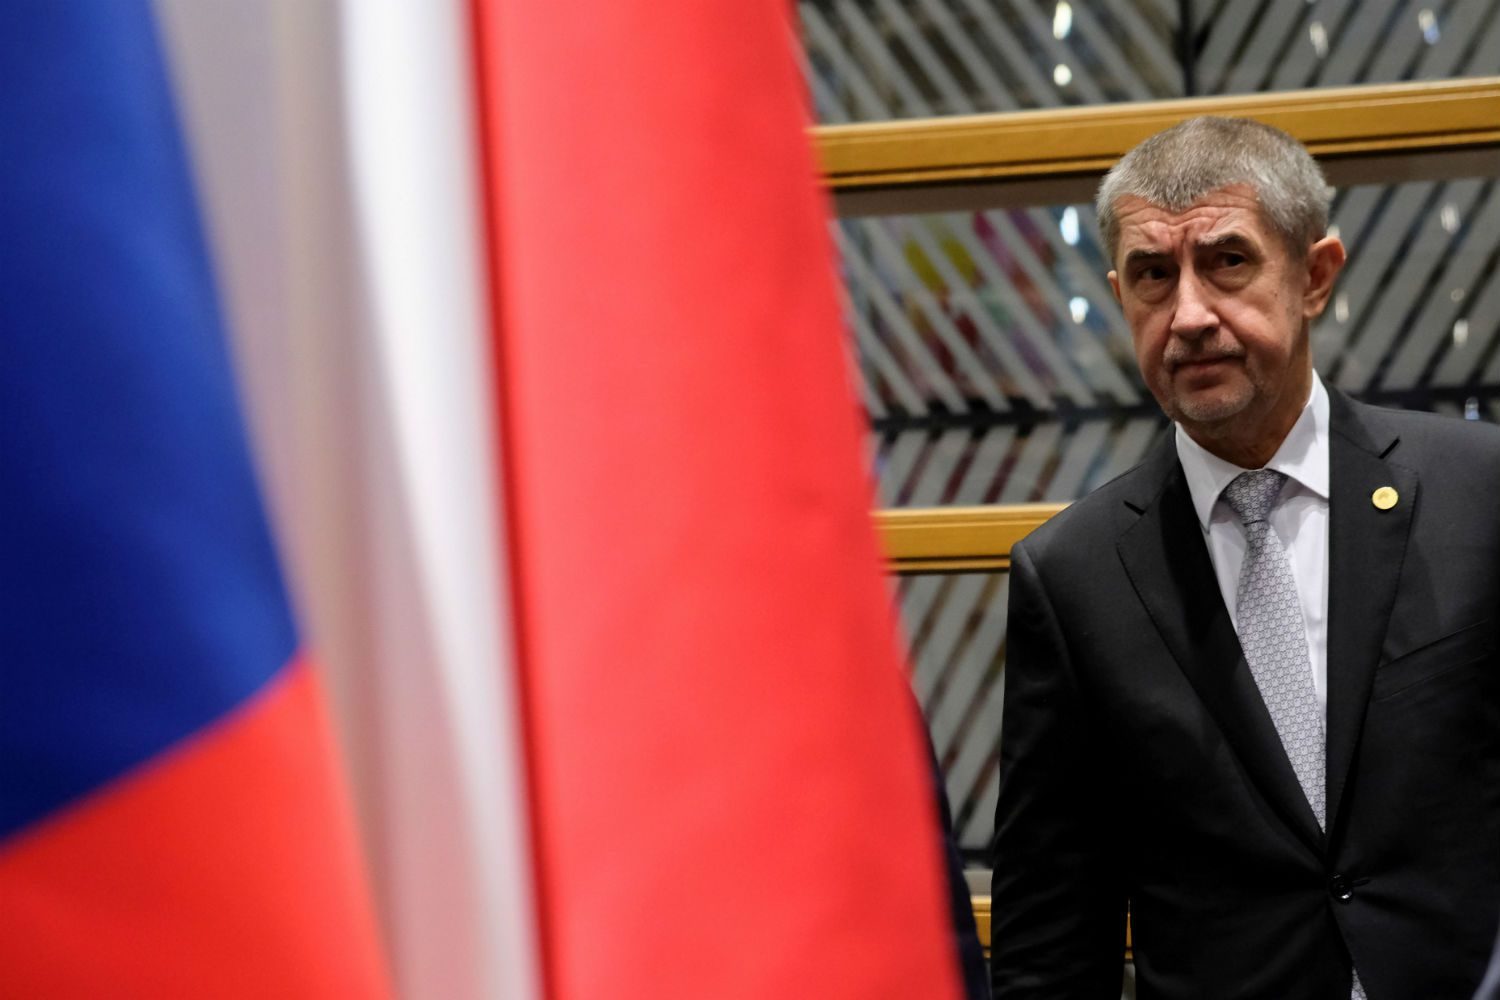 The Babis Agenda Stumbles in Forming Government - Czech Points